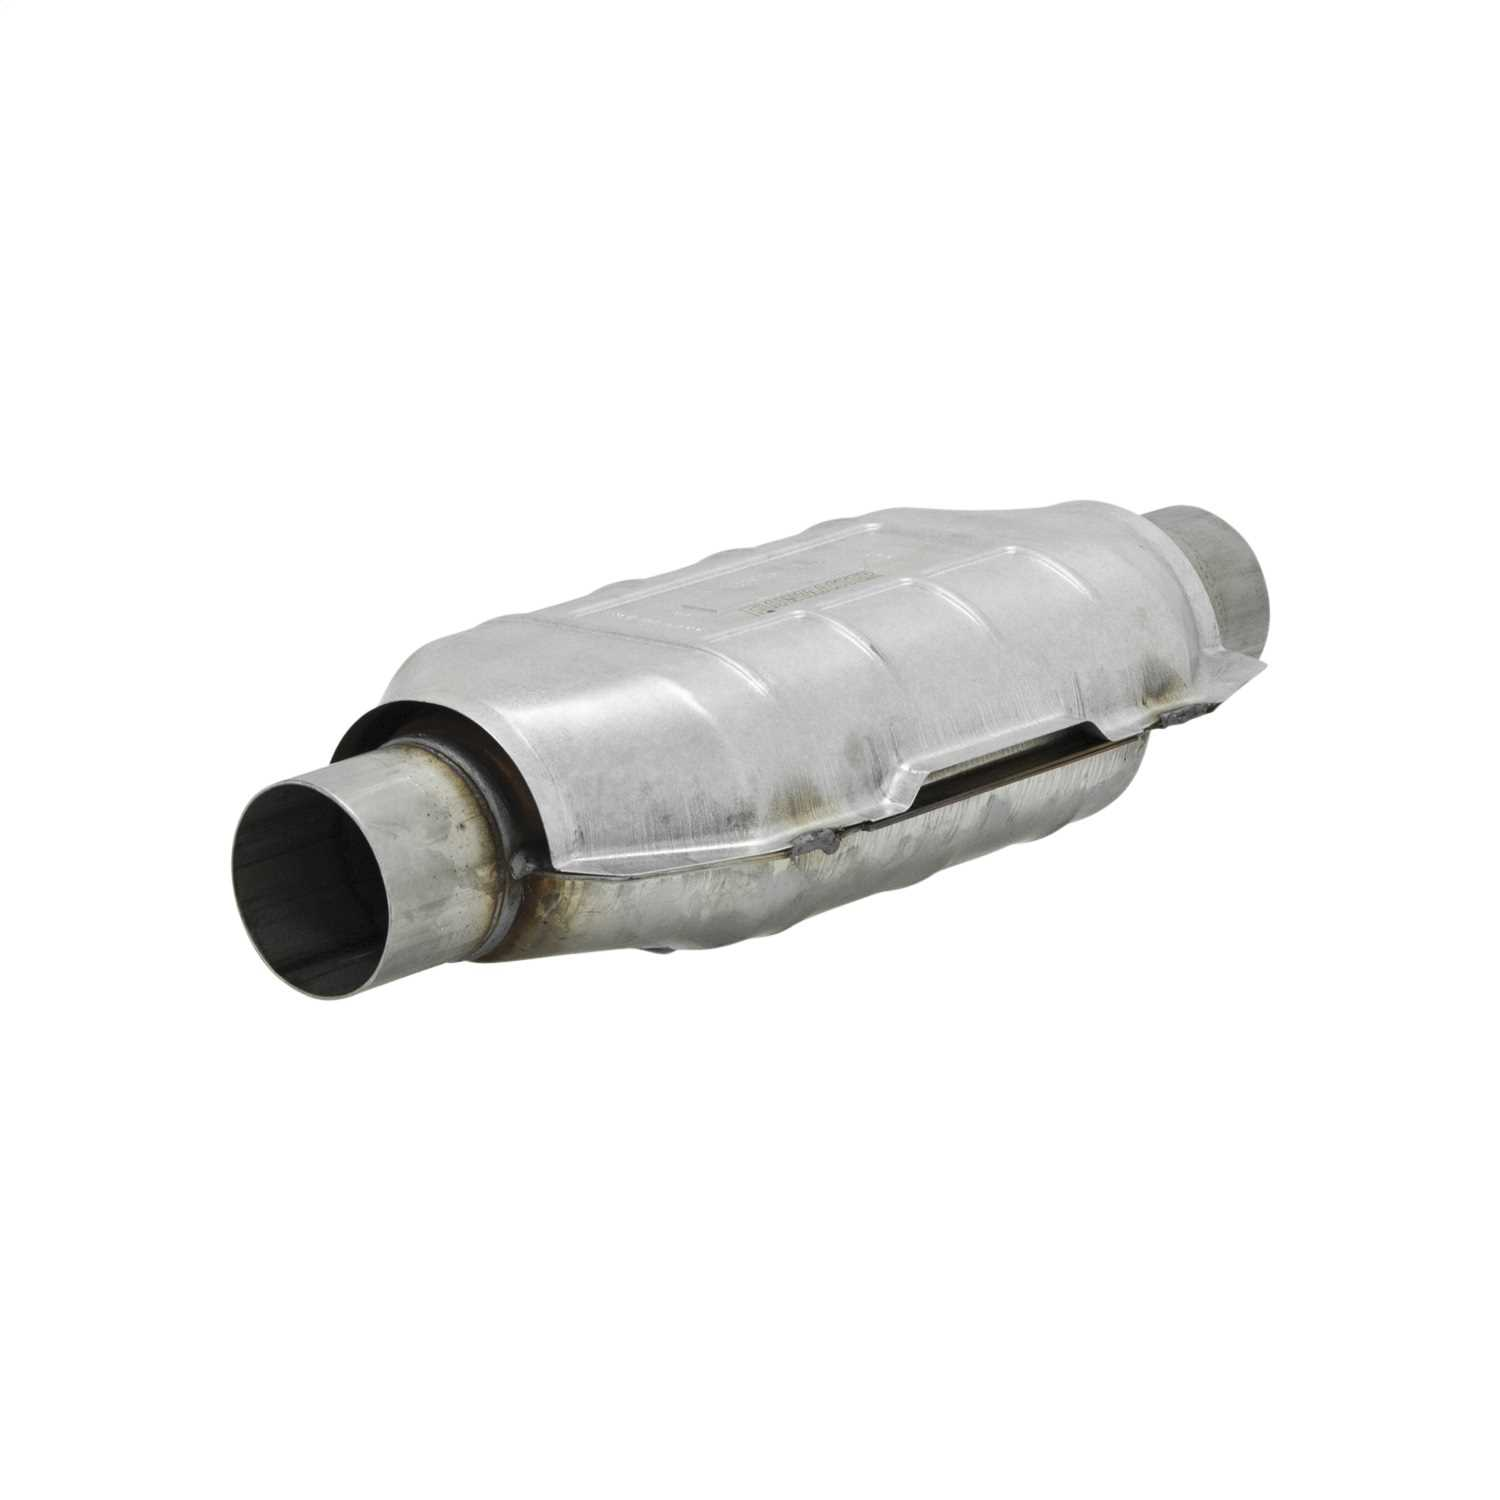 2840220 Flowmaster 49 State Catalytic Converters Universal Catalytic Converter